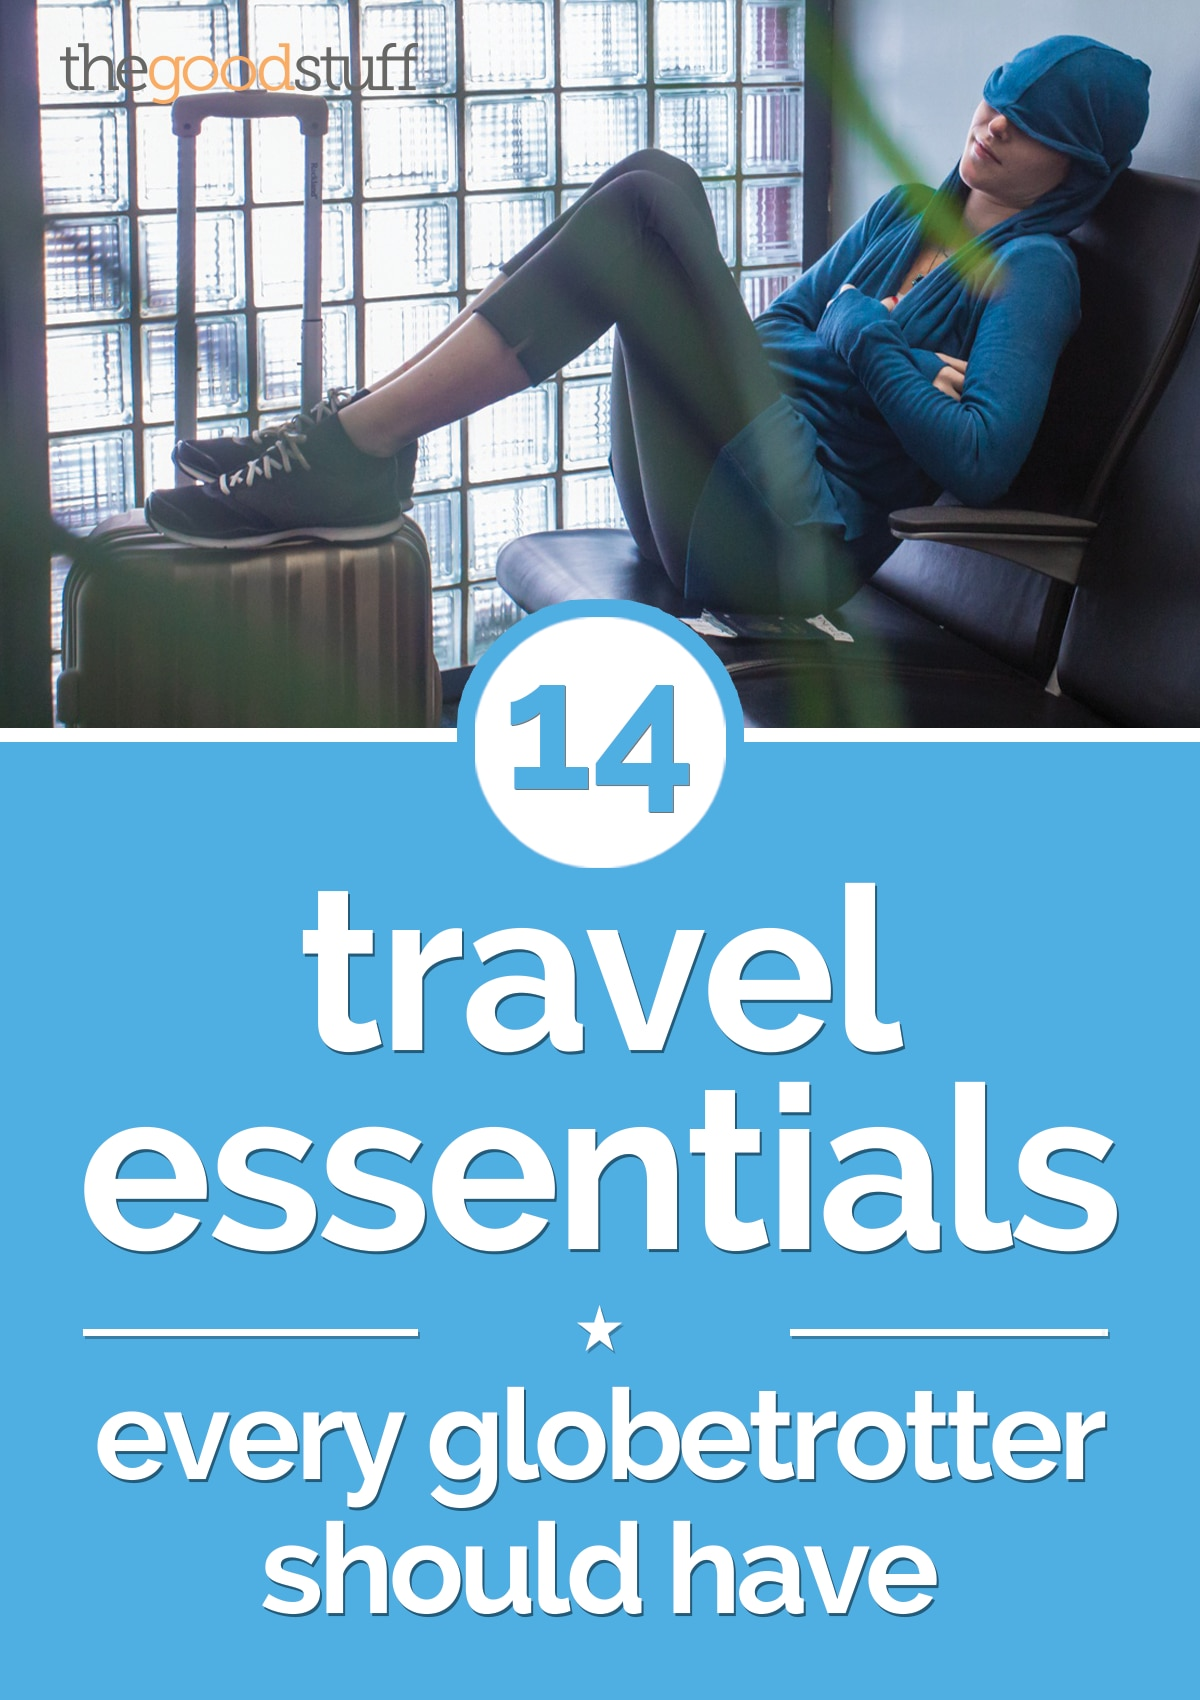 14 Travel Essentials Every Globetrotter Should Have | thegoodstuff